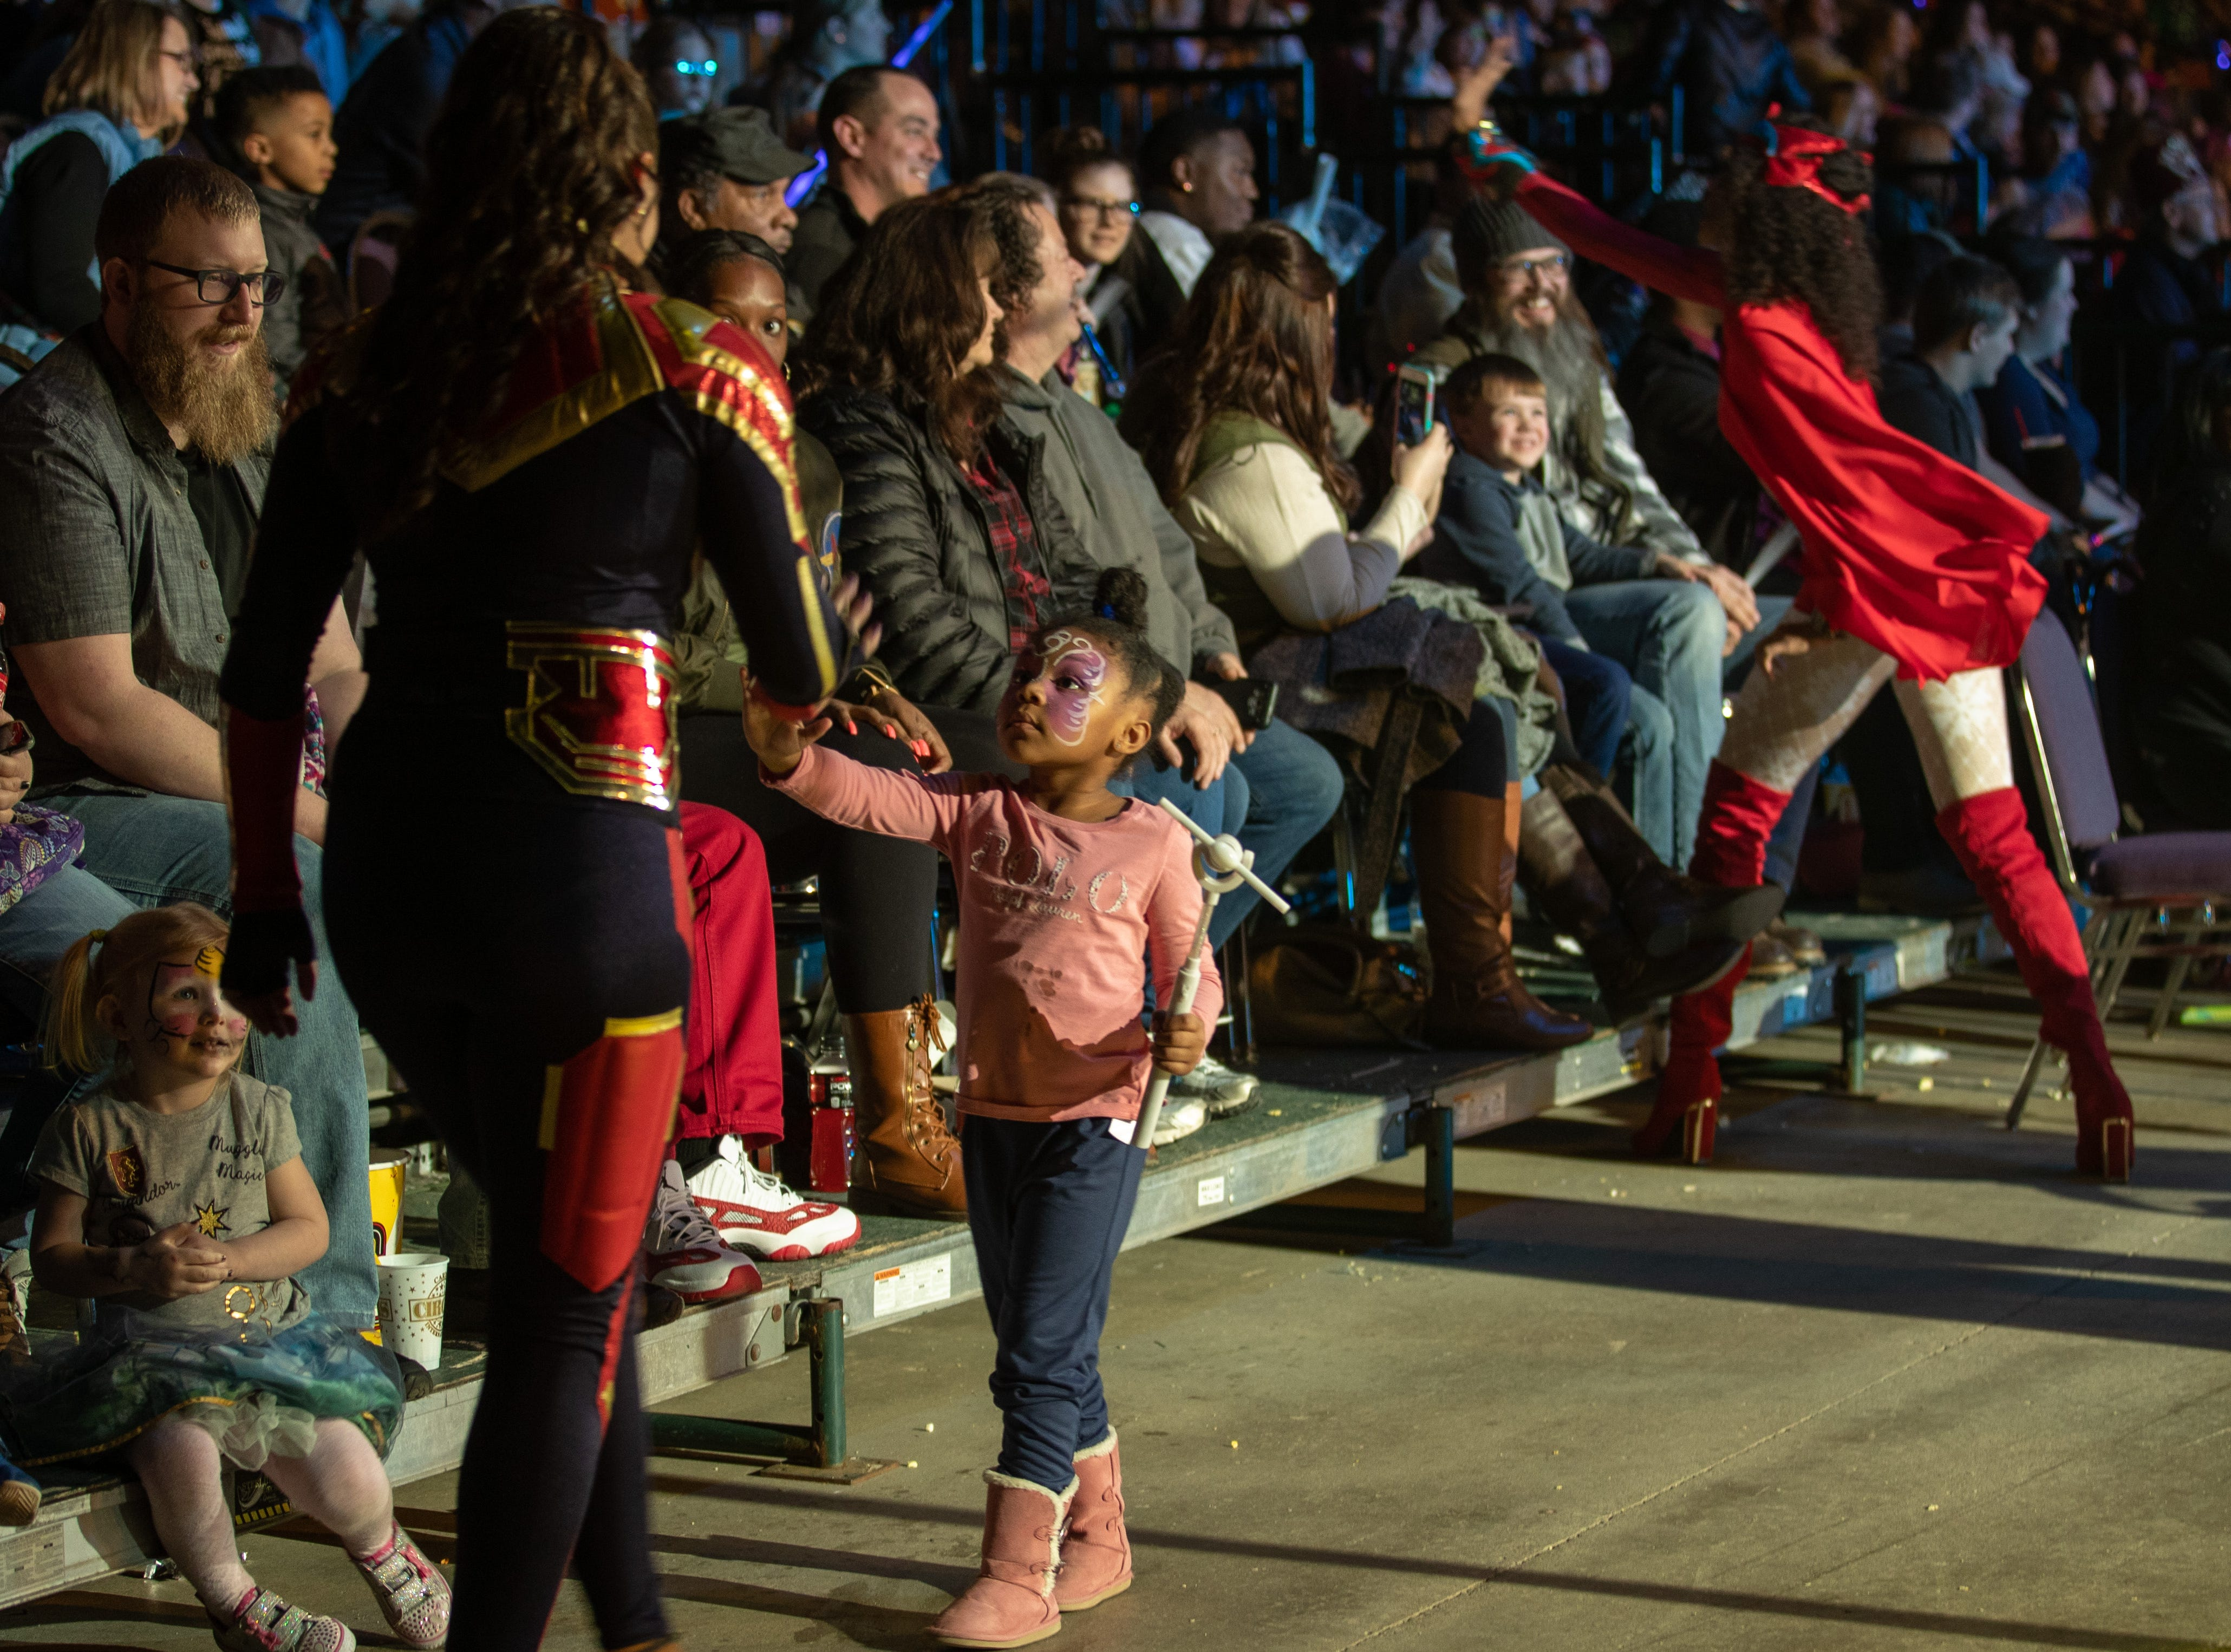 Superheroes come out to thank the crowd at the Kosair Shrine Circus, Saturday, Feb. 9, 2019 in Louisville Ky.